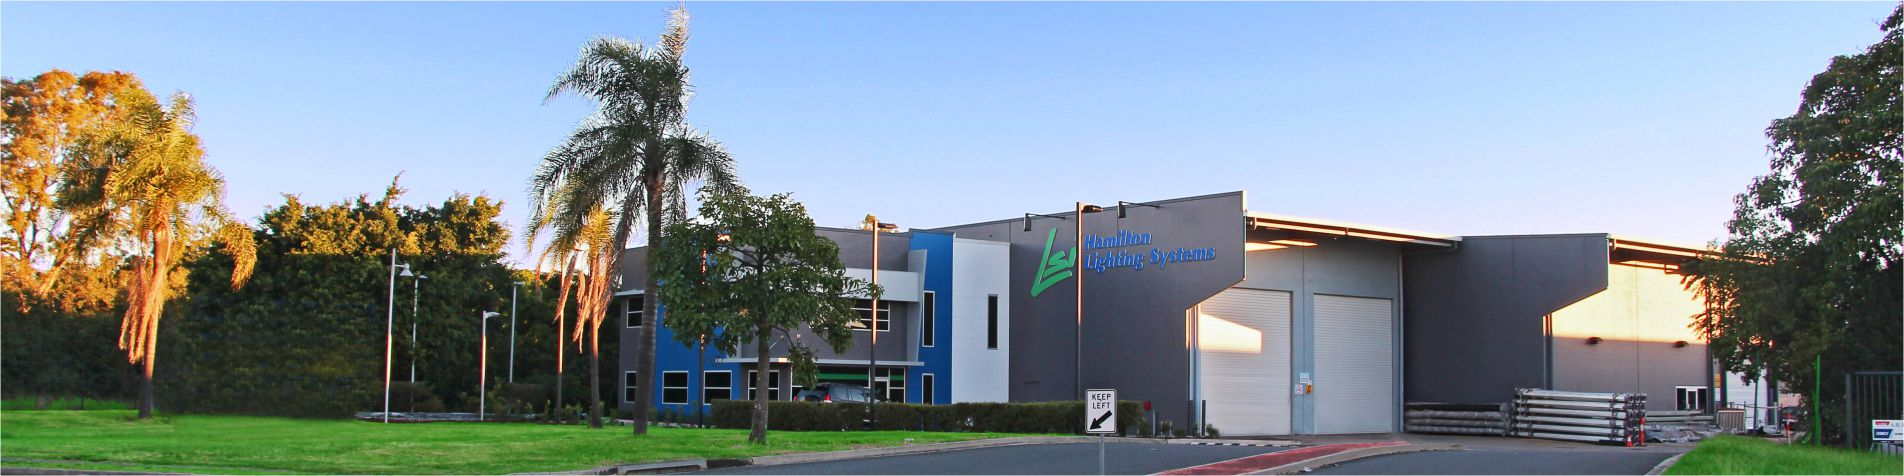 lsi hamilton lighting system lsi hamilton lighting systems offers high performance lighting fixtures and poles for the commercial petroleum and tennis court markets throughout australia and new zealand